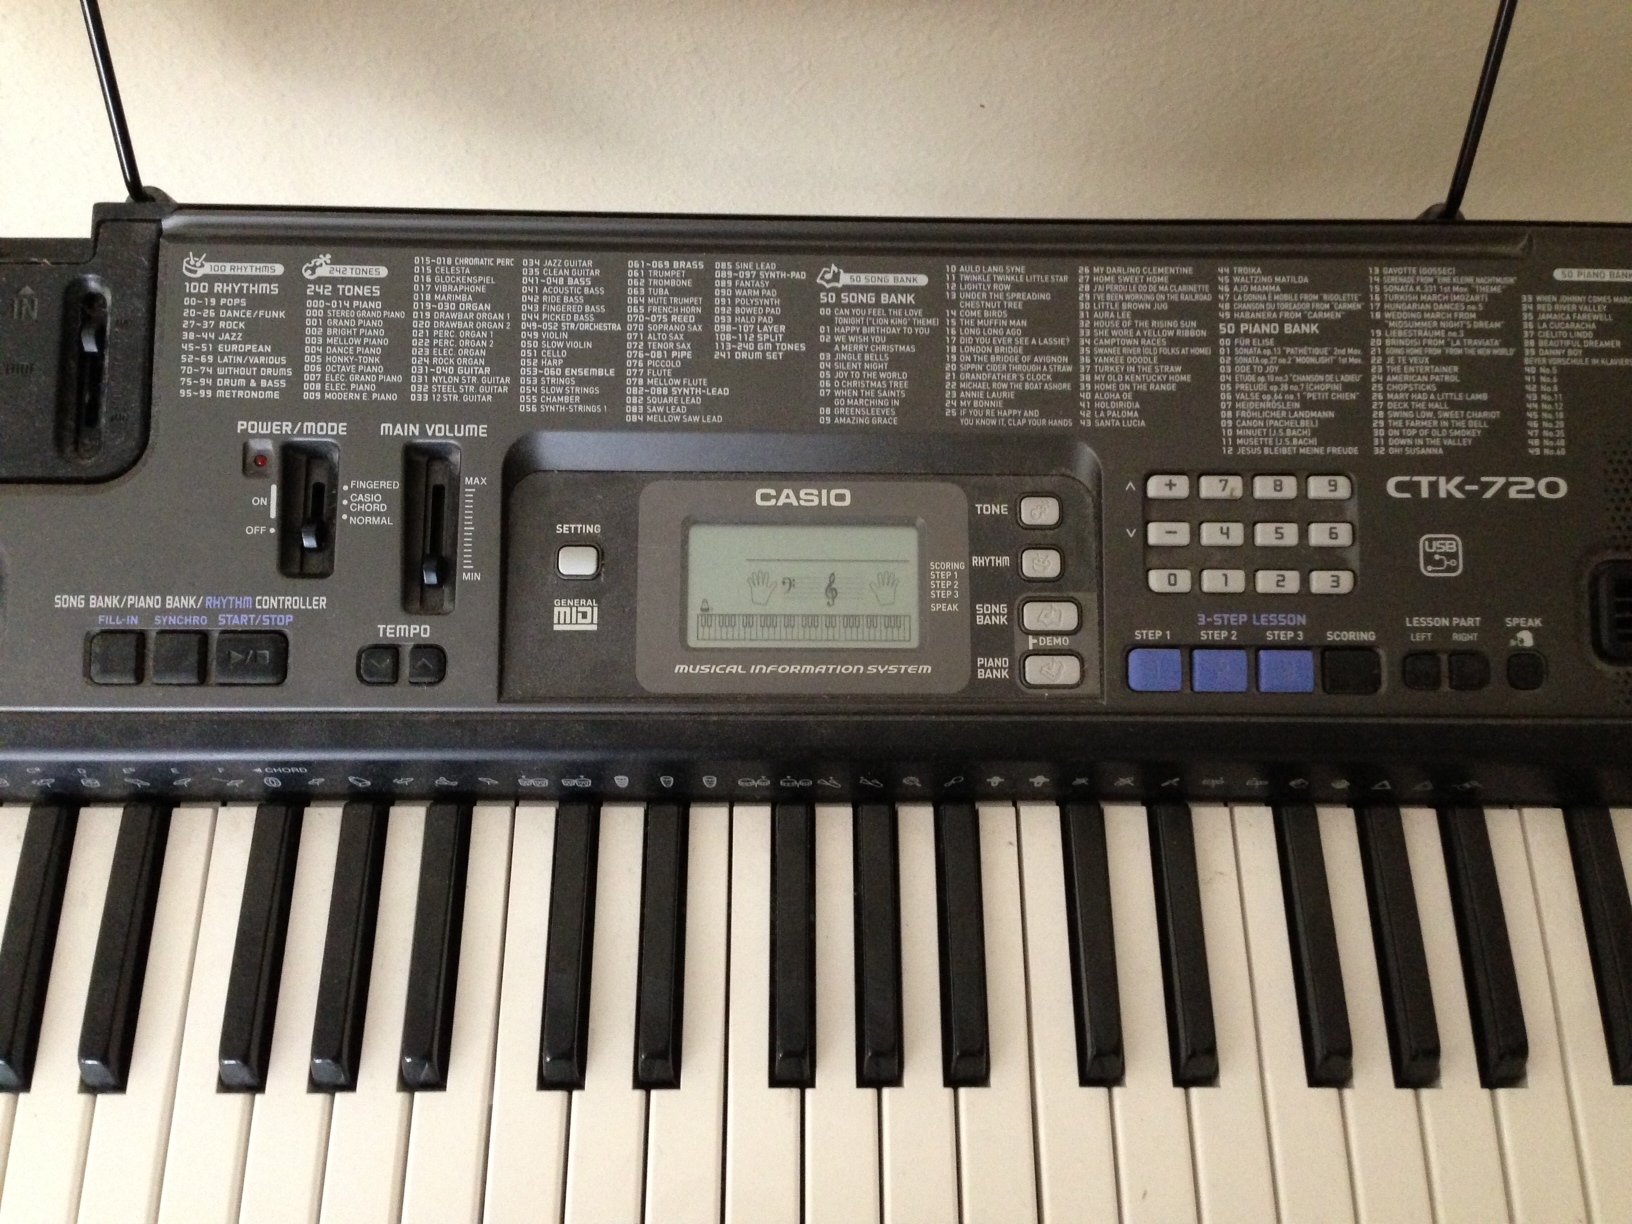 Casio electronic keyboard CTK720 61 Fullsize keys